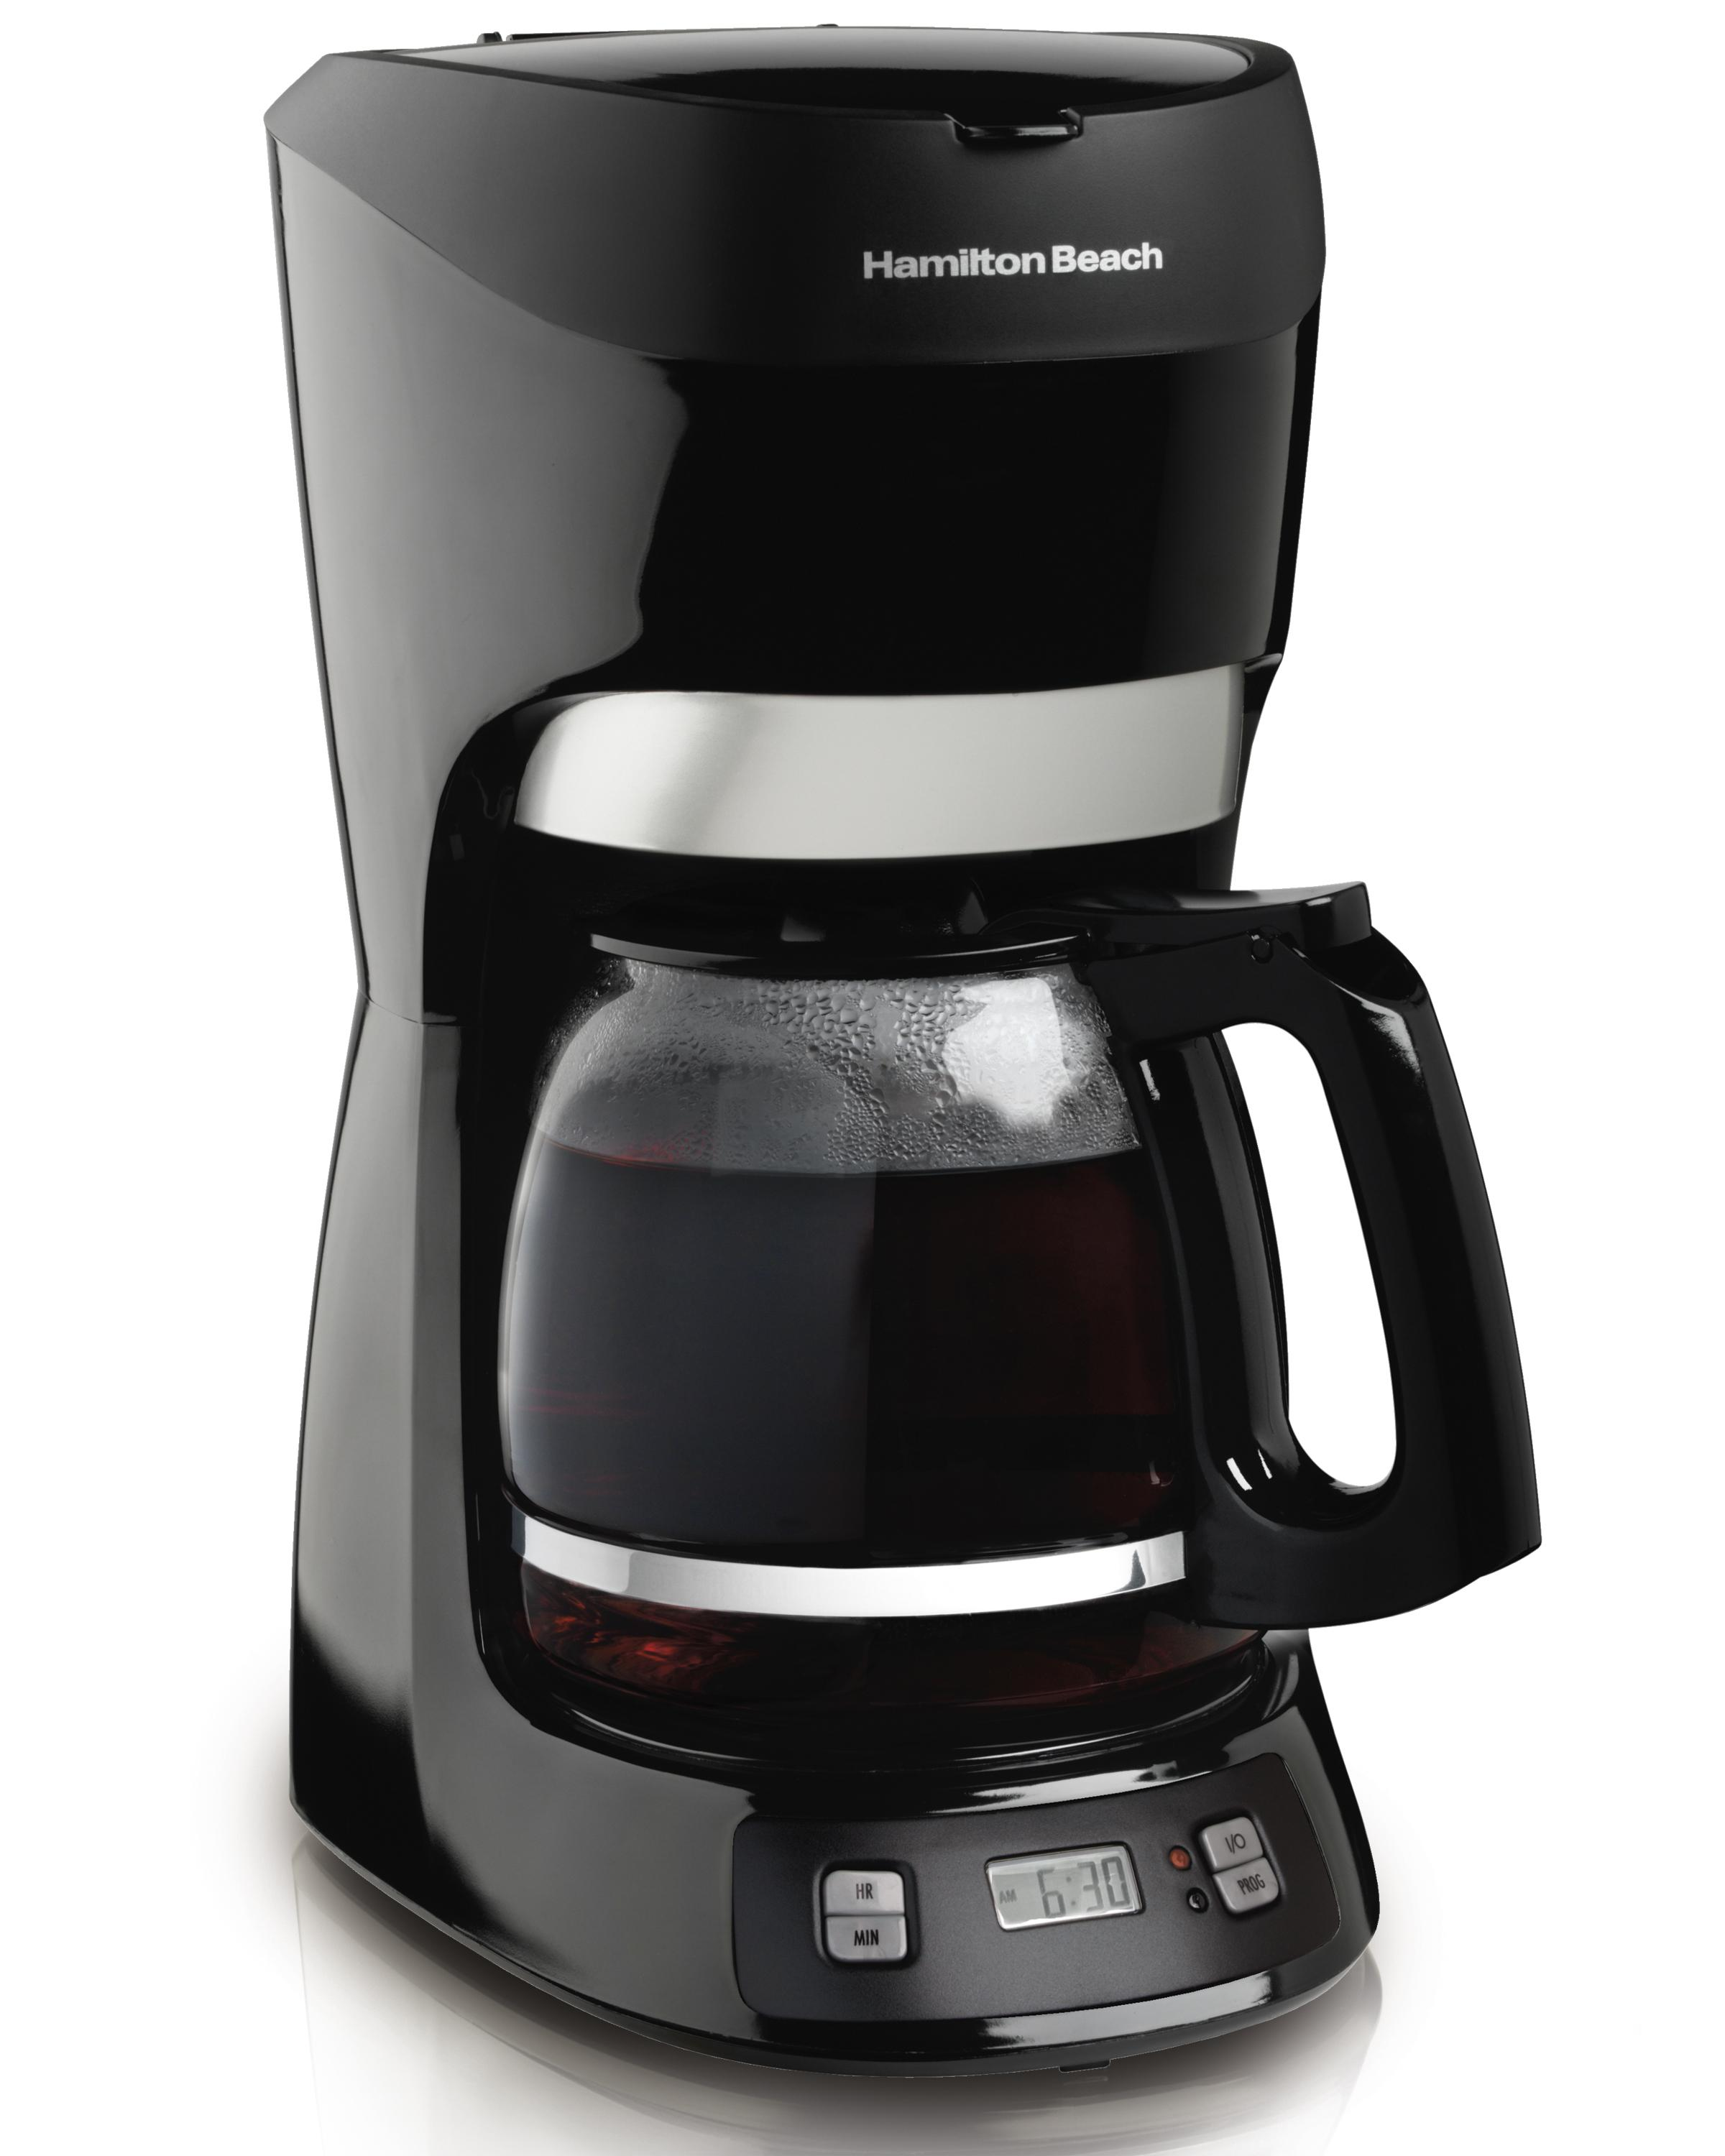 Coffee Pot For Coffee Maker : Amazon.com: Hamilton Beach 12-Cup Coffee Maker with Digital Clock (49467): Coffee Makers For ...